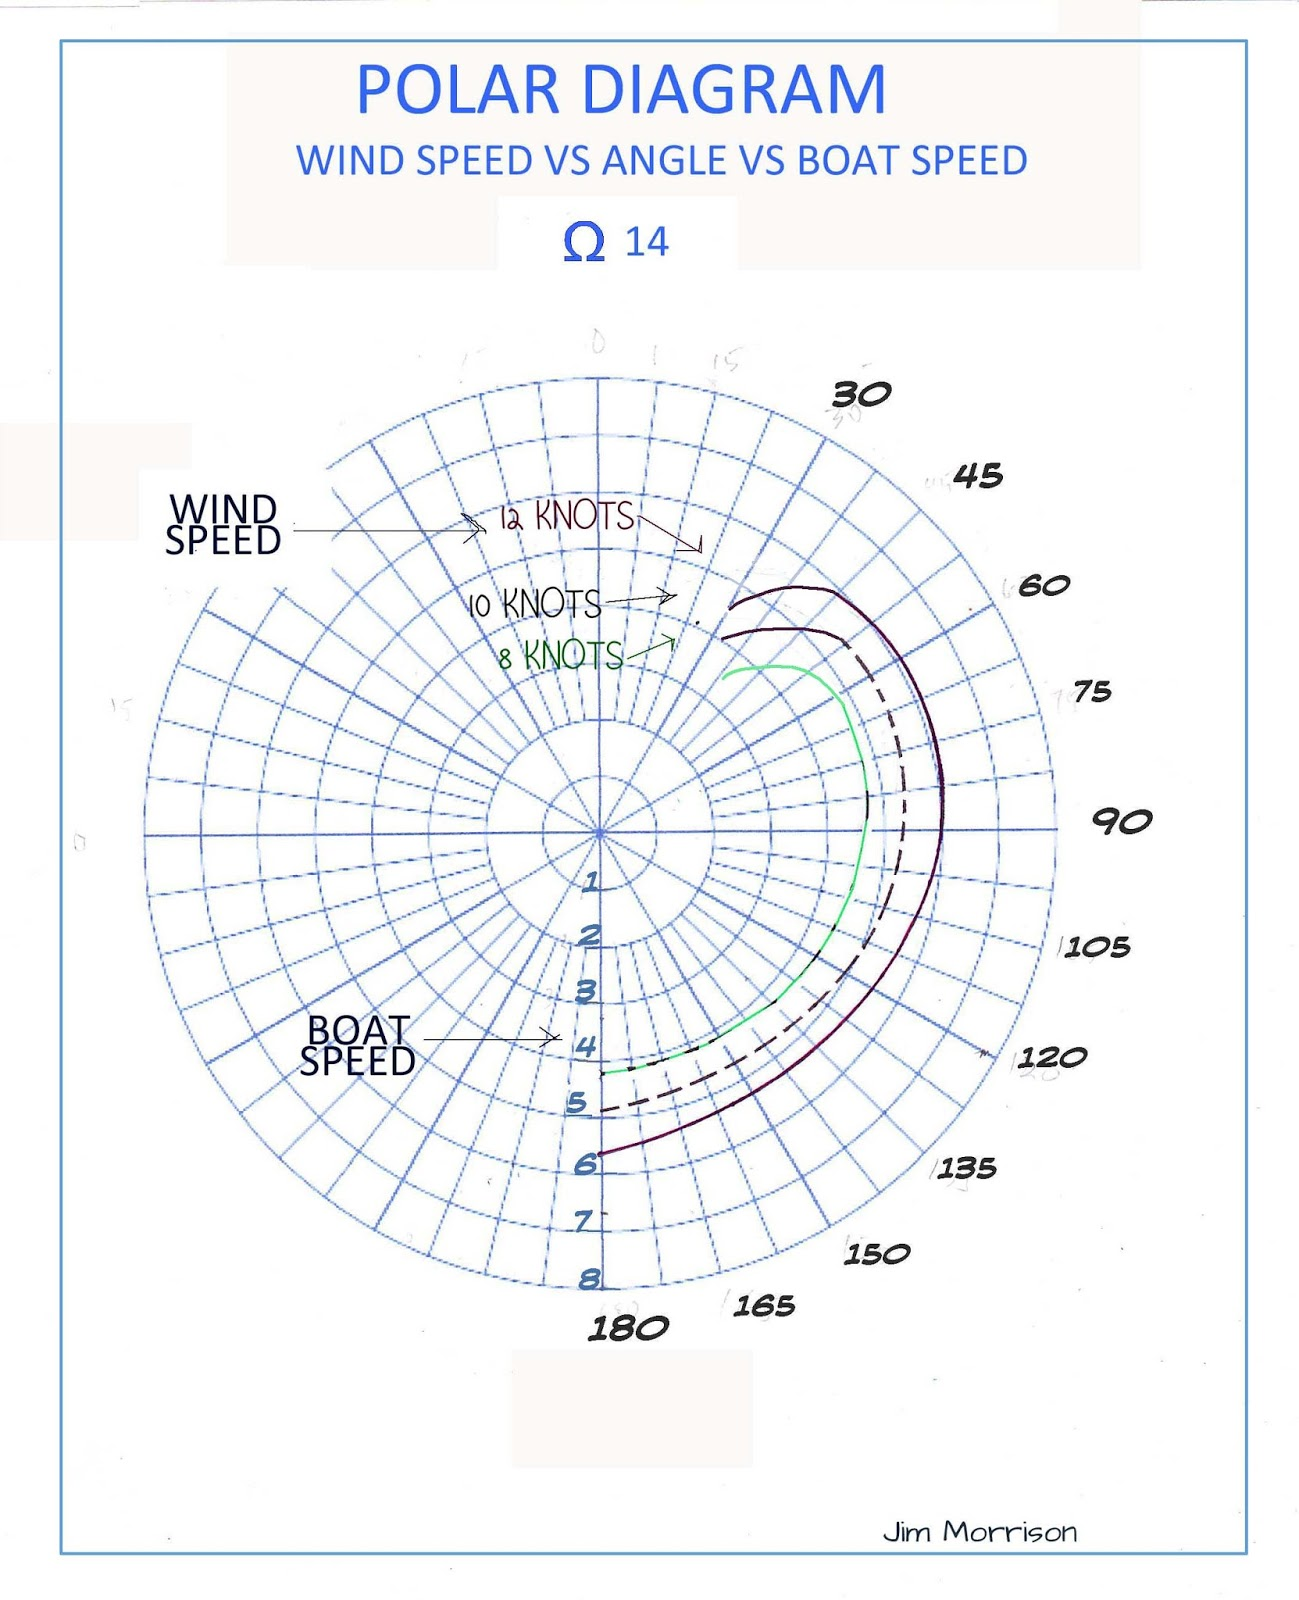 medium resolution of omega 14 sailboat omega 14 polar diagram for wind speed vs angle